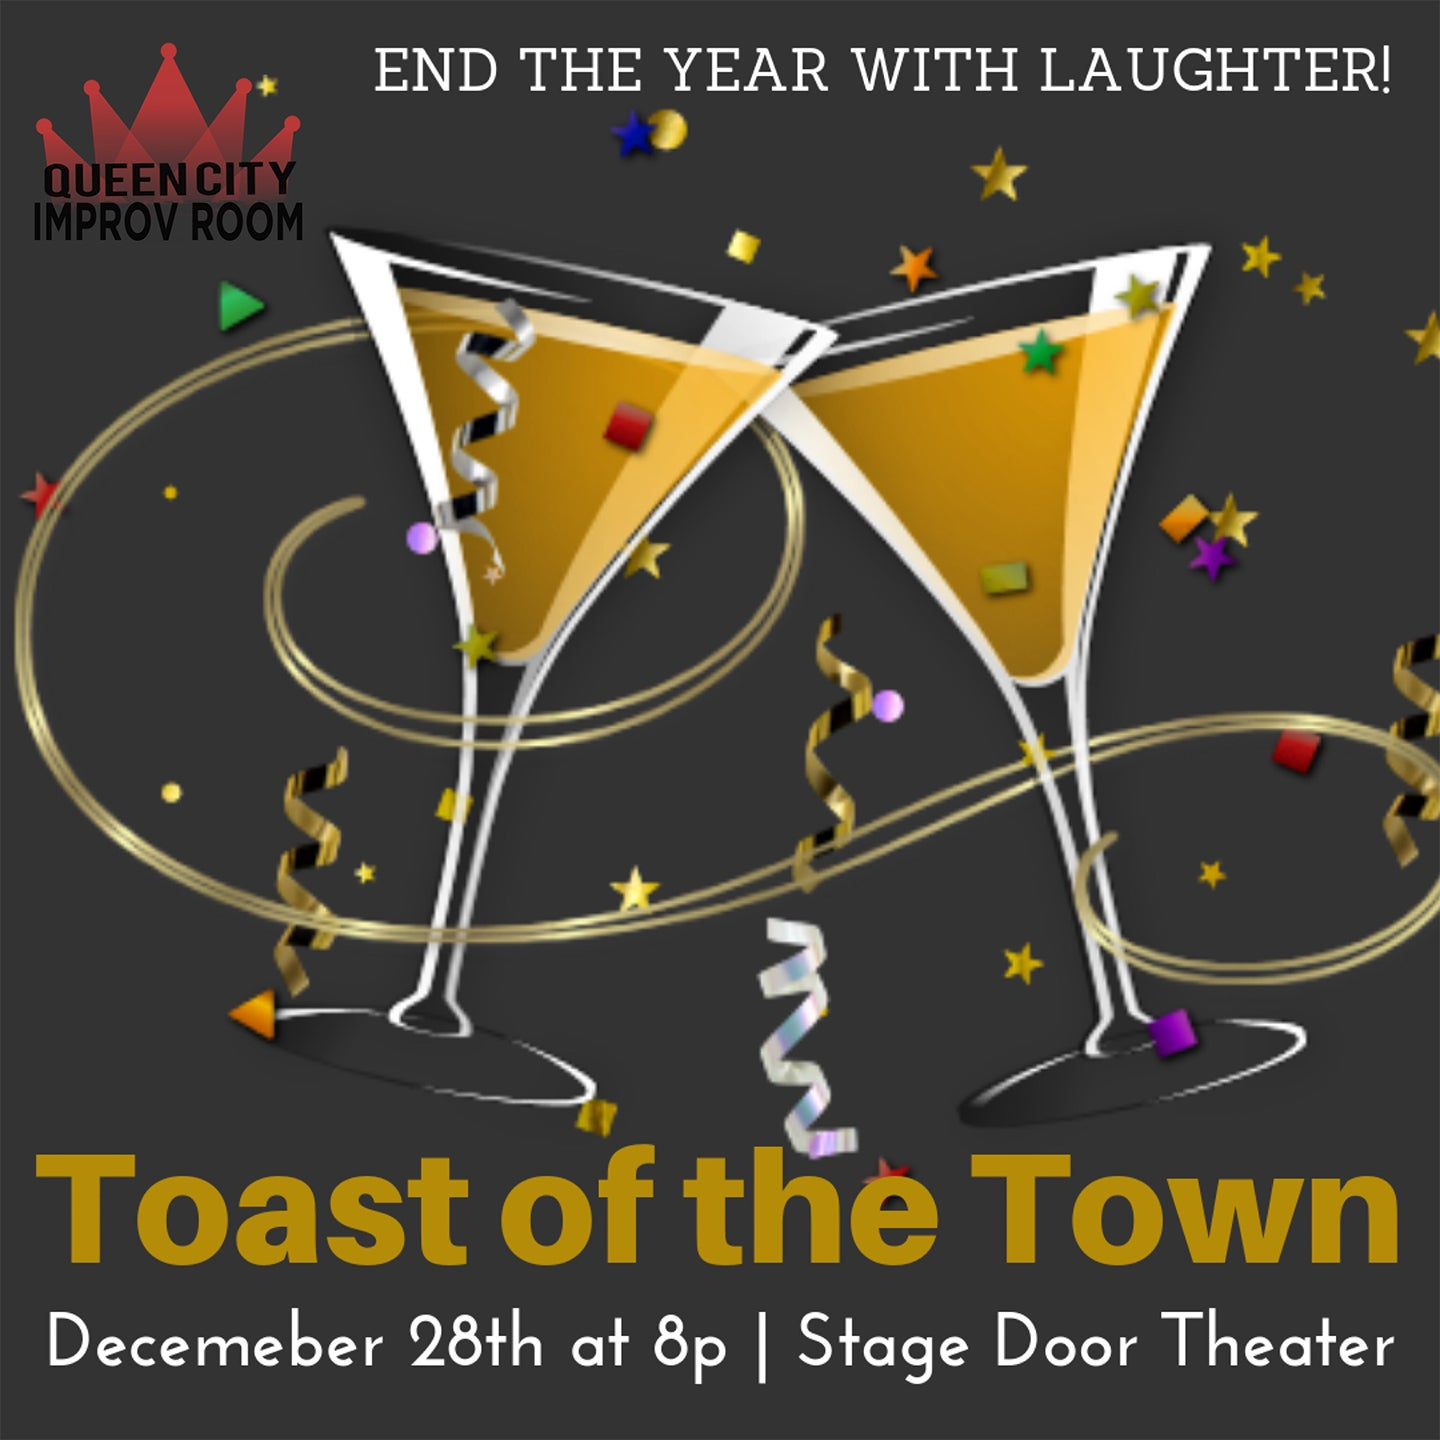 Queen City Improv Room: New Year's Eve